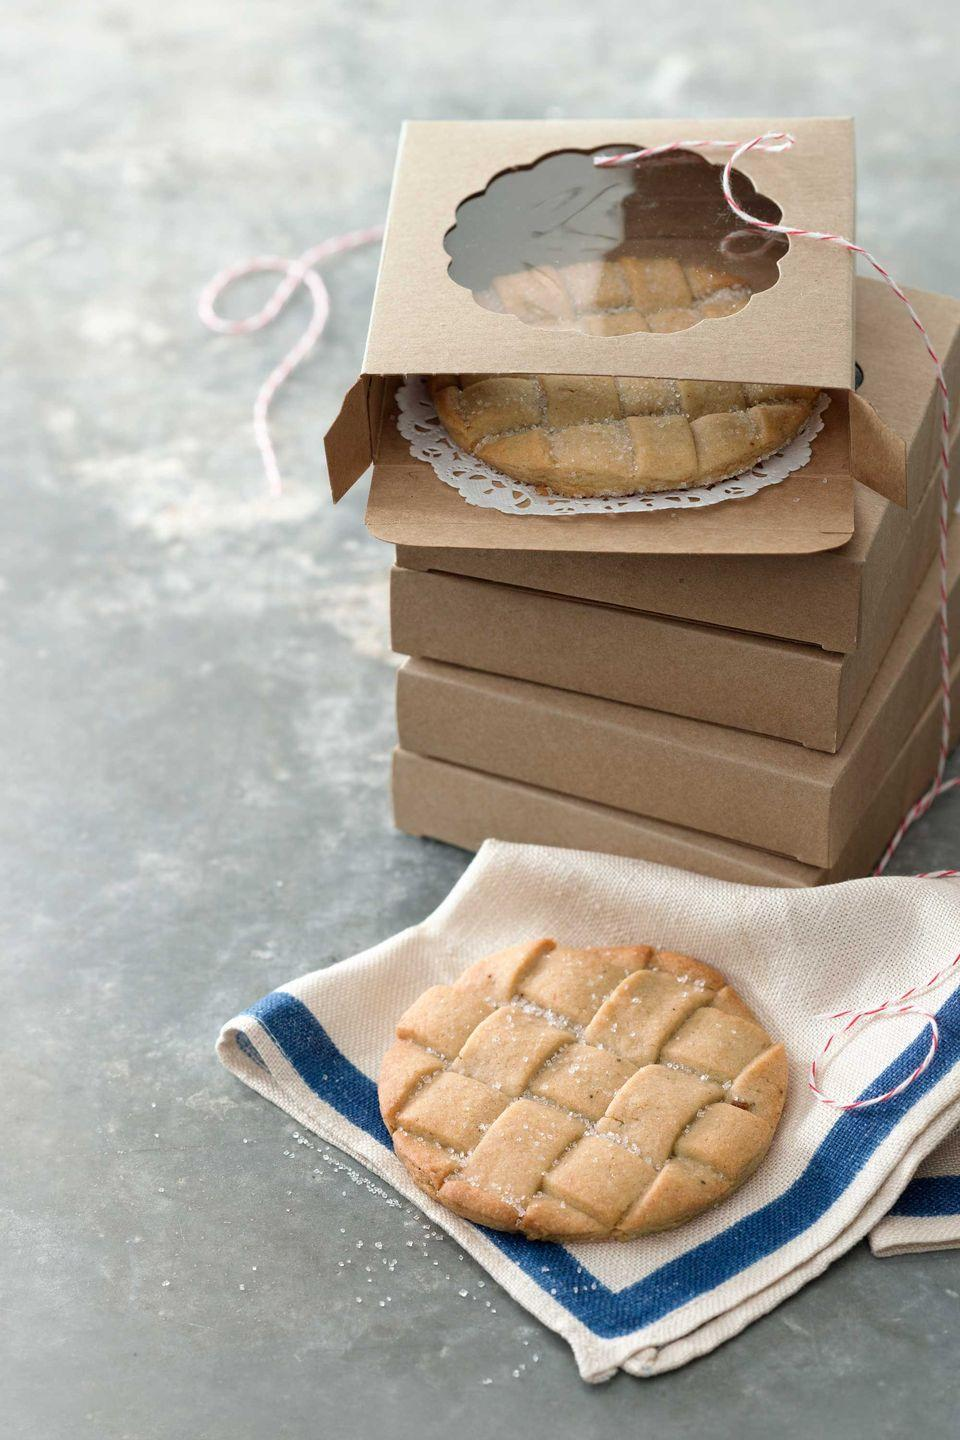 """<p>If you love sugar cookies and buttery pie crust, these cookies are for you. They are simple, elegant, and sure to impress. Try gifting them at a Christmas cookie swap or bring them to your next holiday party.</p><p><strong><a href=""""https://www.countryliving.com/food-drinks/recipes/a4406/cinnamon-sugar-lattice-cookies-recipe-clx1213/"""" rel=""""nofollow noopener"""" target=""""_blank"""" data-ylk=""""slk:Get the recipe"""" class=""""link rapid-noclick-resp"""">Get the recipe</a>.</strong></p><p><a class=""""link rapid-noclick-resp"""" href=""""https://www.amazon.com/CK-Products-Sanding-Sugar-White/dp/B0001W6NTO?tag=syn-yahoo-20&ascsubtag=%5Bartid%7C10050.g.647%5Bsrc%7Cyahoo-us"""" rel=""""nofollow noopener"""" target=""""_blank"""" data-ylk=""""slk:SHOP SANDING SUGARS"""">SHOP SANDING SUGARS</a><br></p>"""